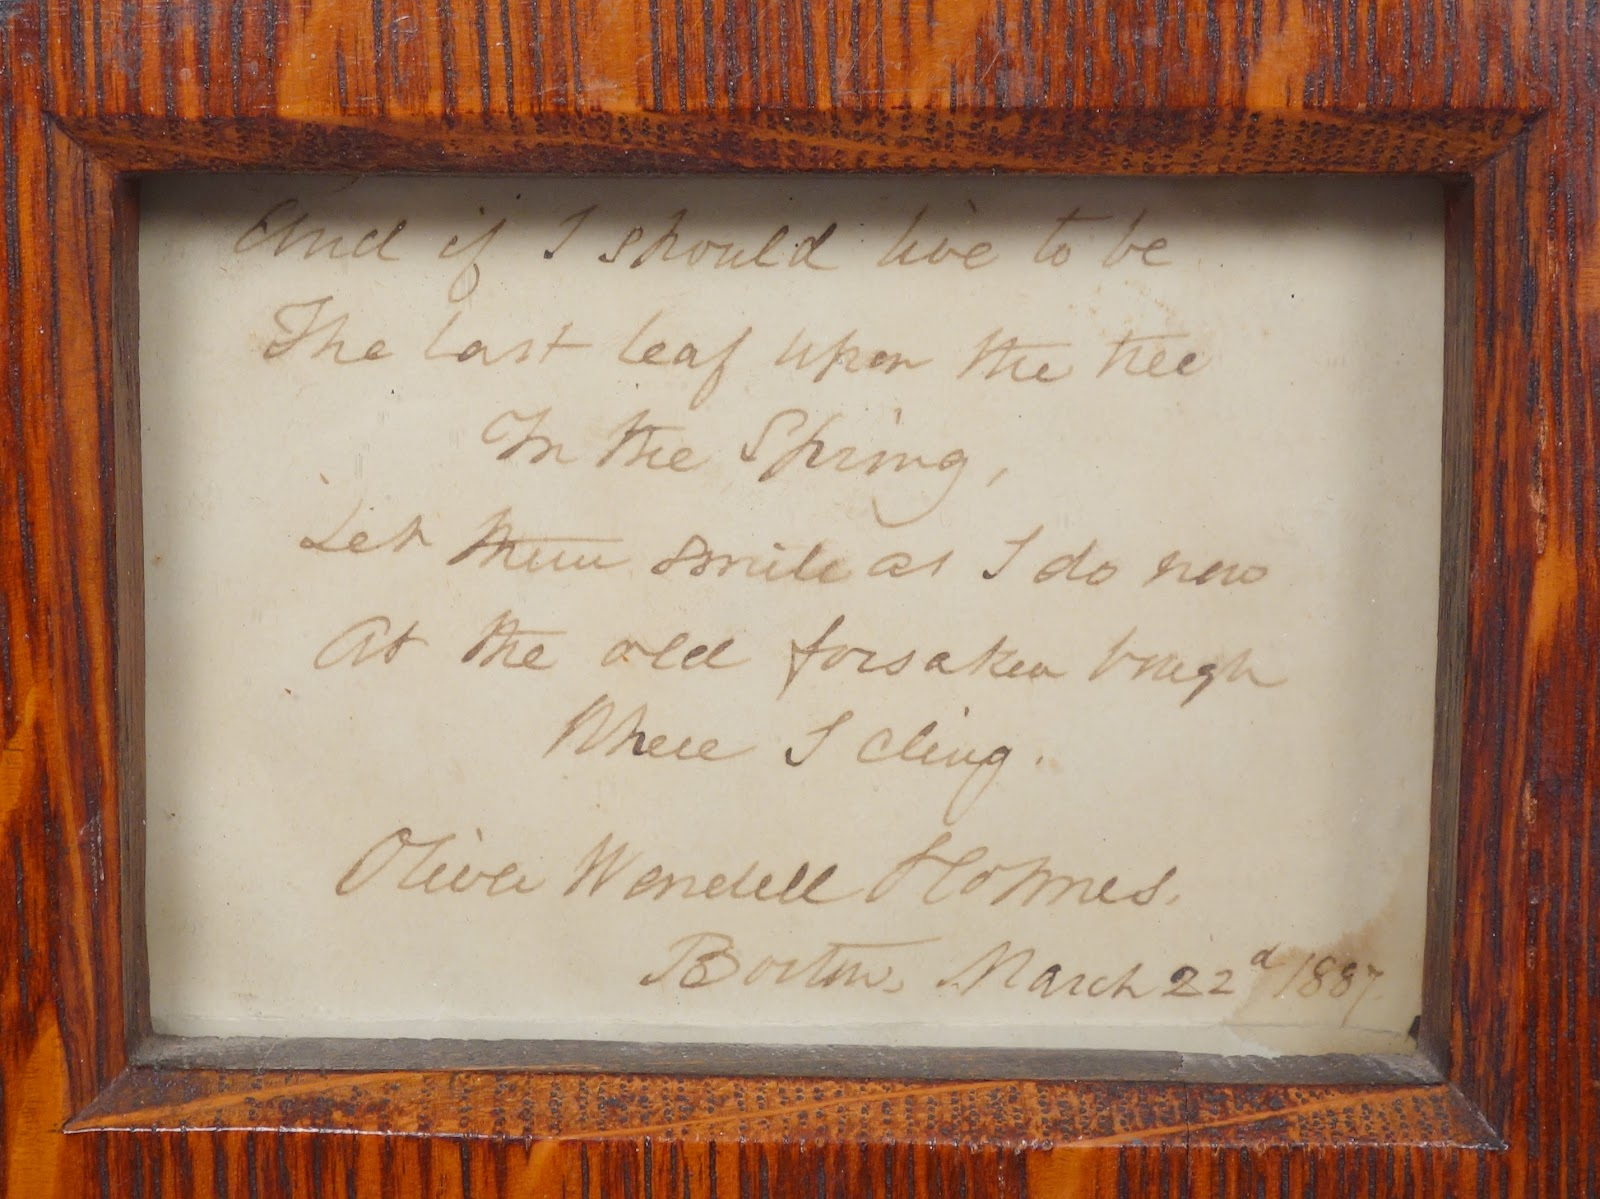 handwriting on paper in a wooden frame